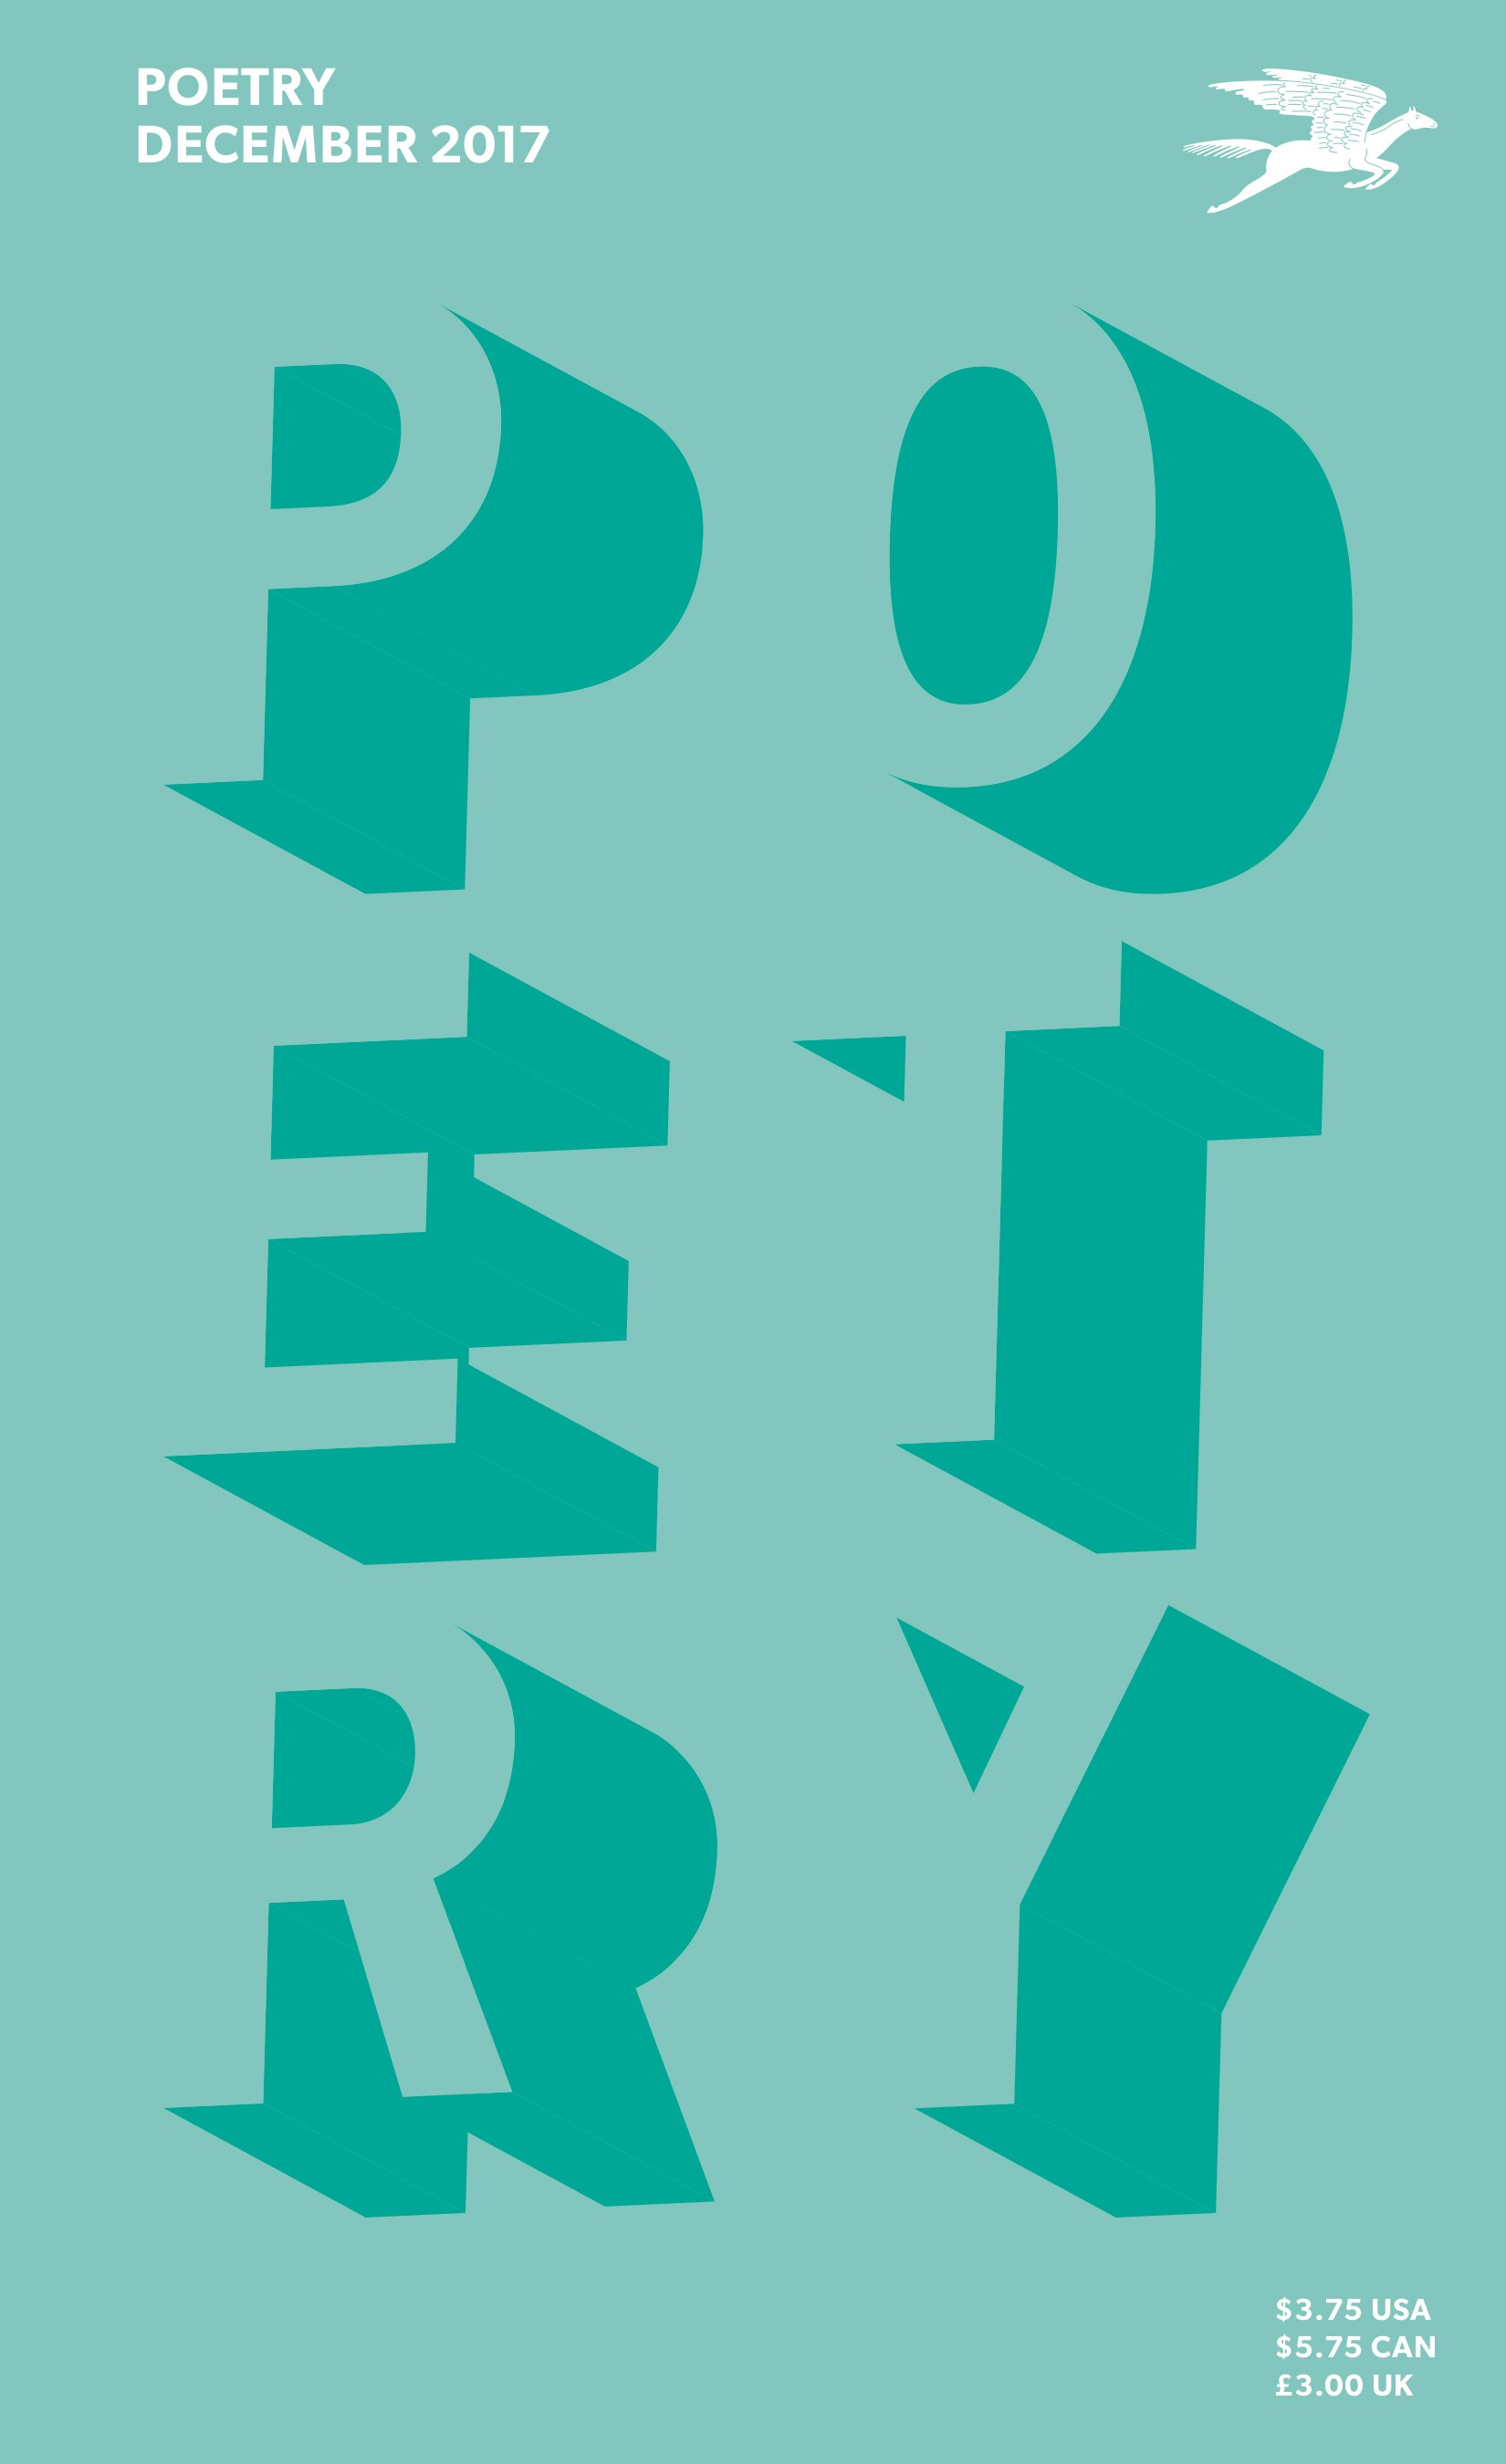 December 2017 Poetry Magazine cover